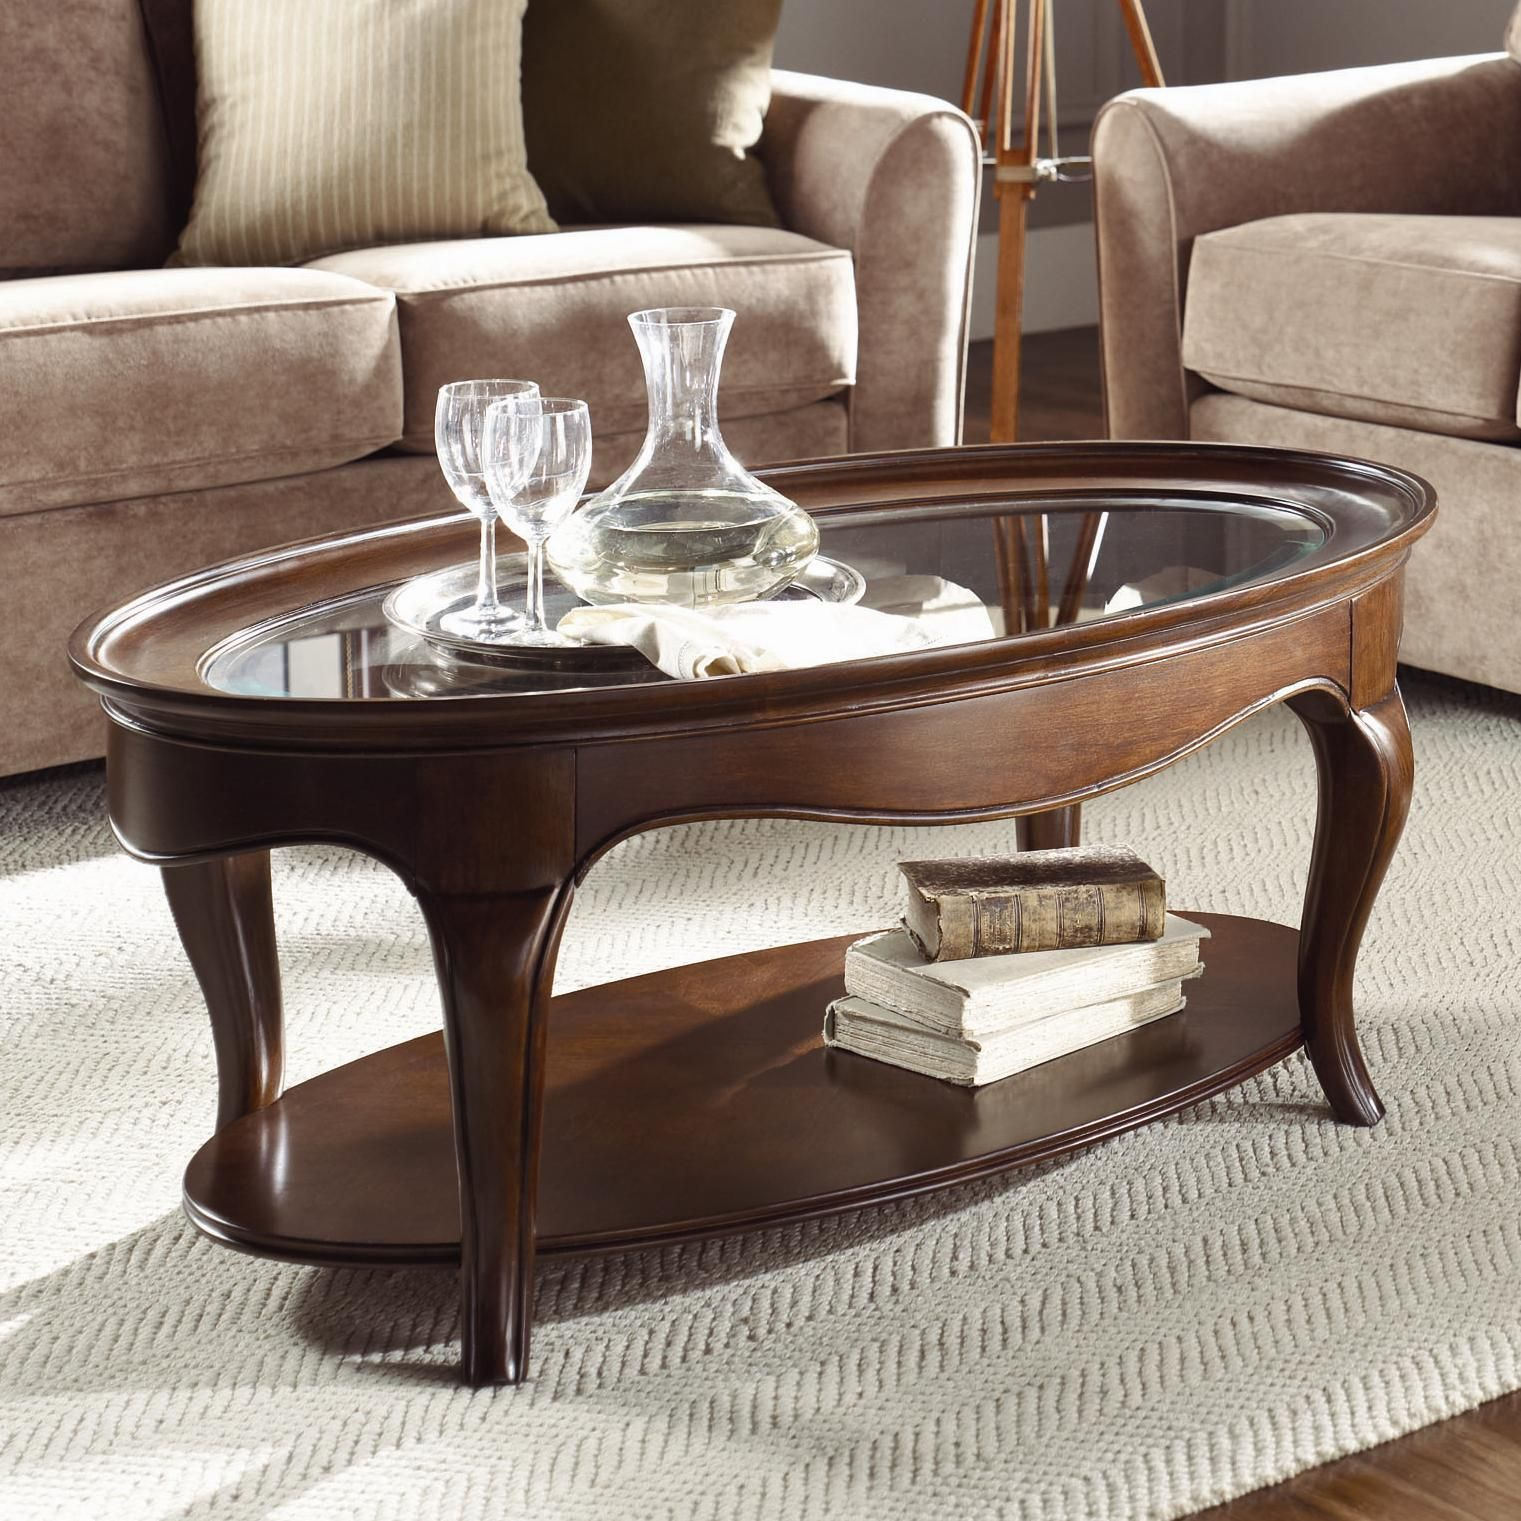 Cherry Grove Oval Cocktail Table by American Drew Ideas for the